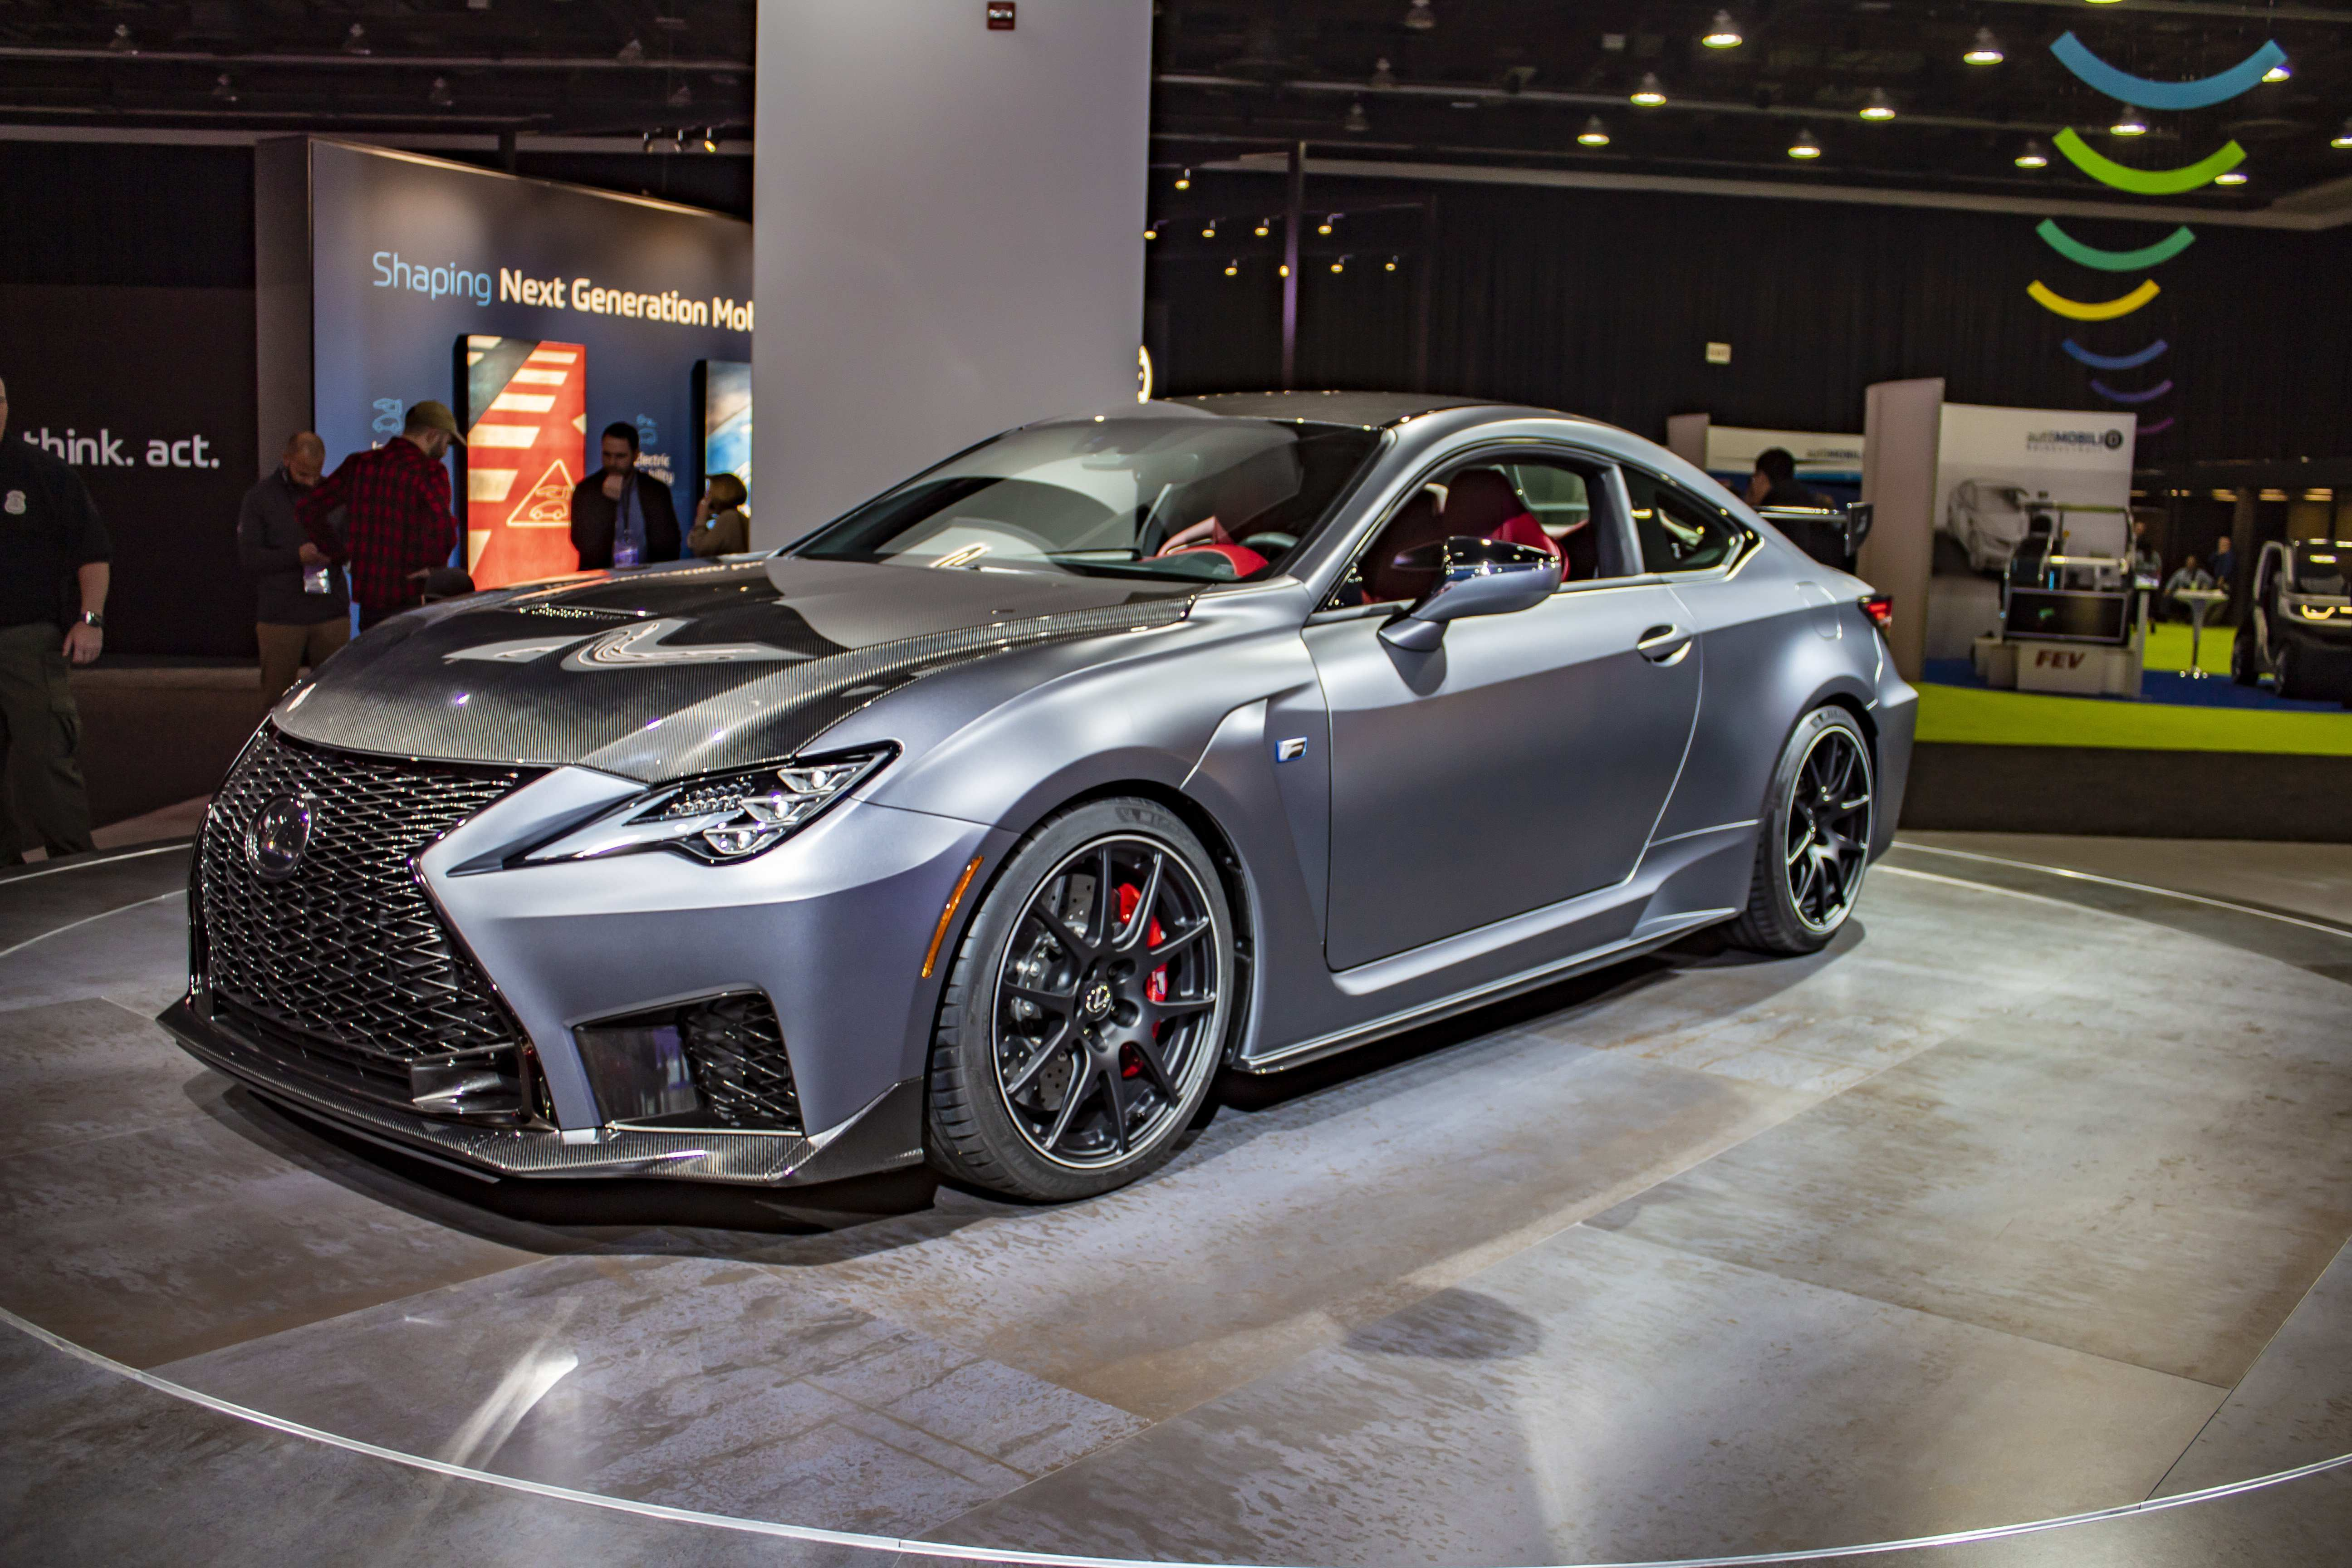 74 All New 2020 Lexus Rc F Track Edition Price And Review